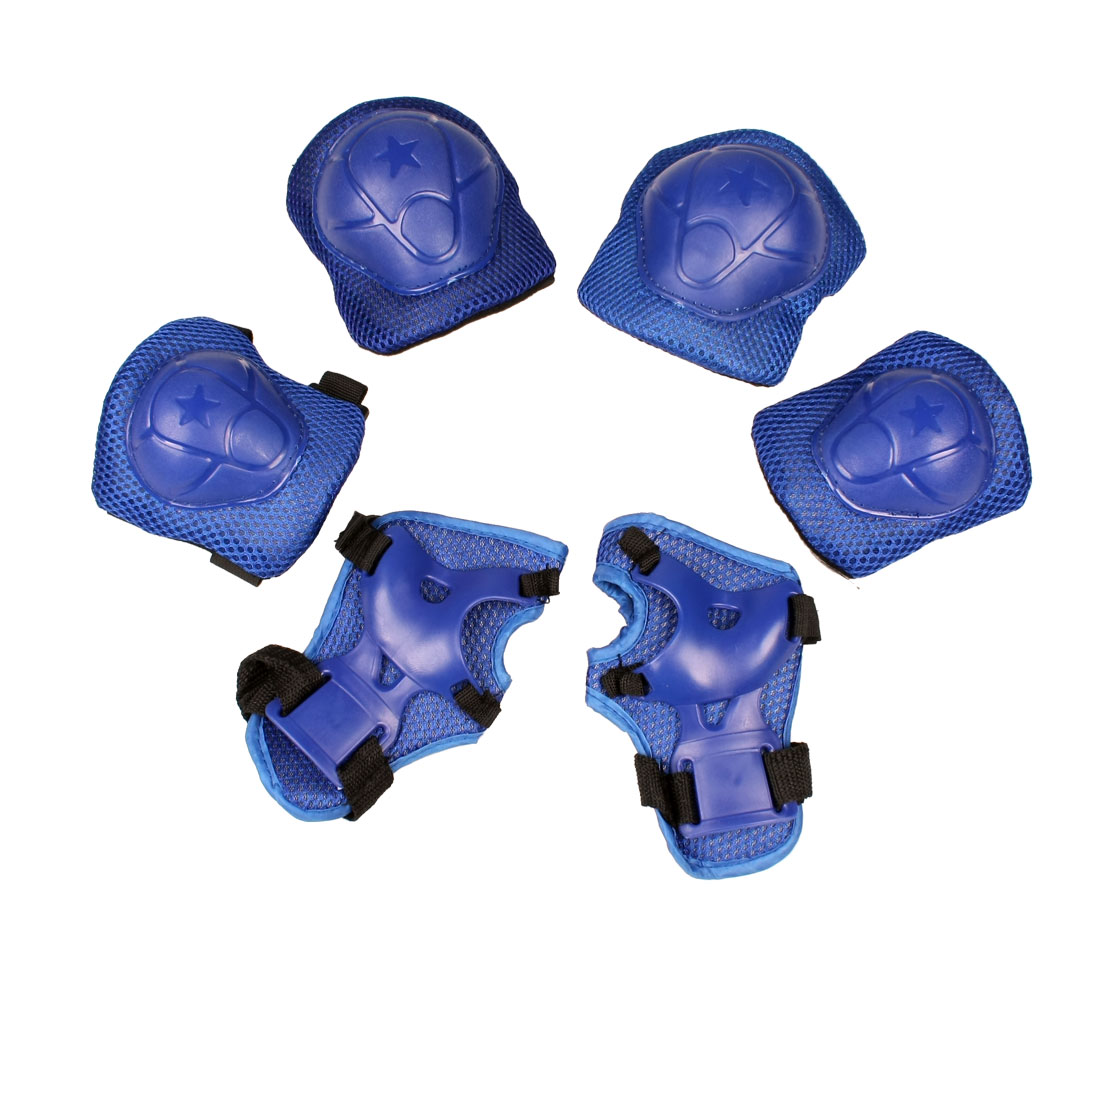 6Pcs Skating Cycling Wrist Support Guard Elbow Knee Pads Safety Gear Set For Kids